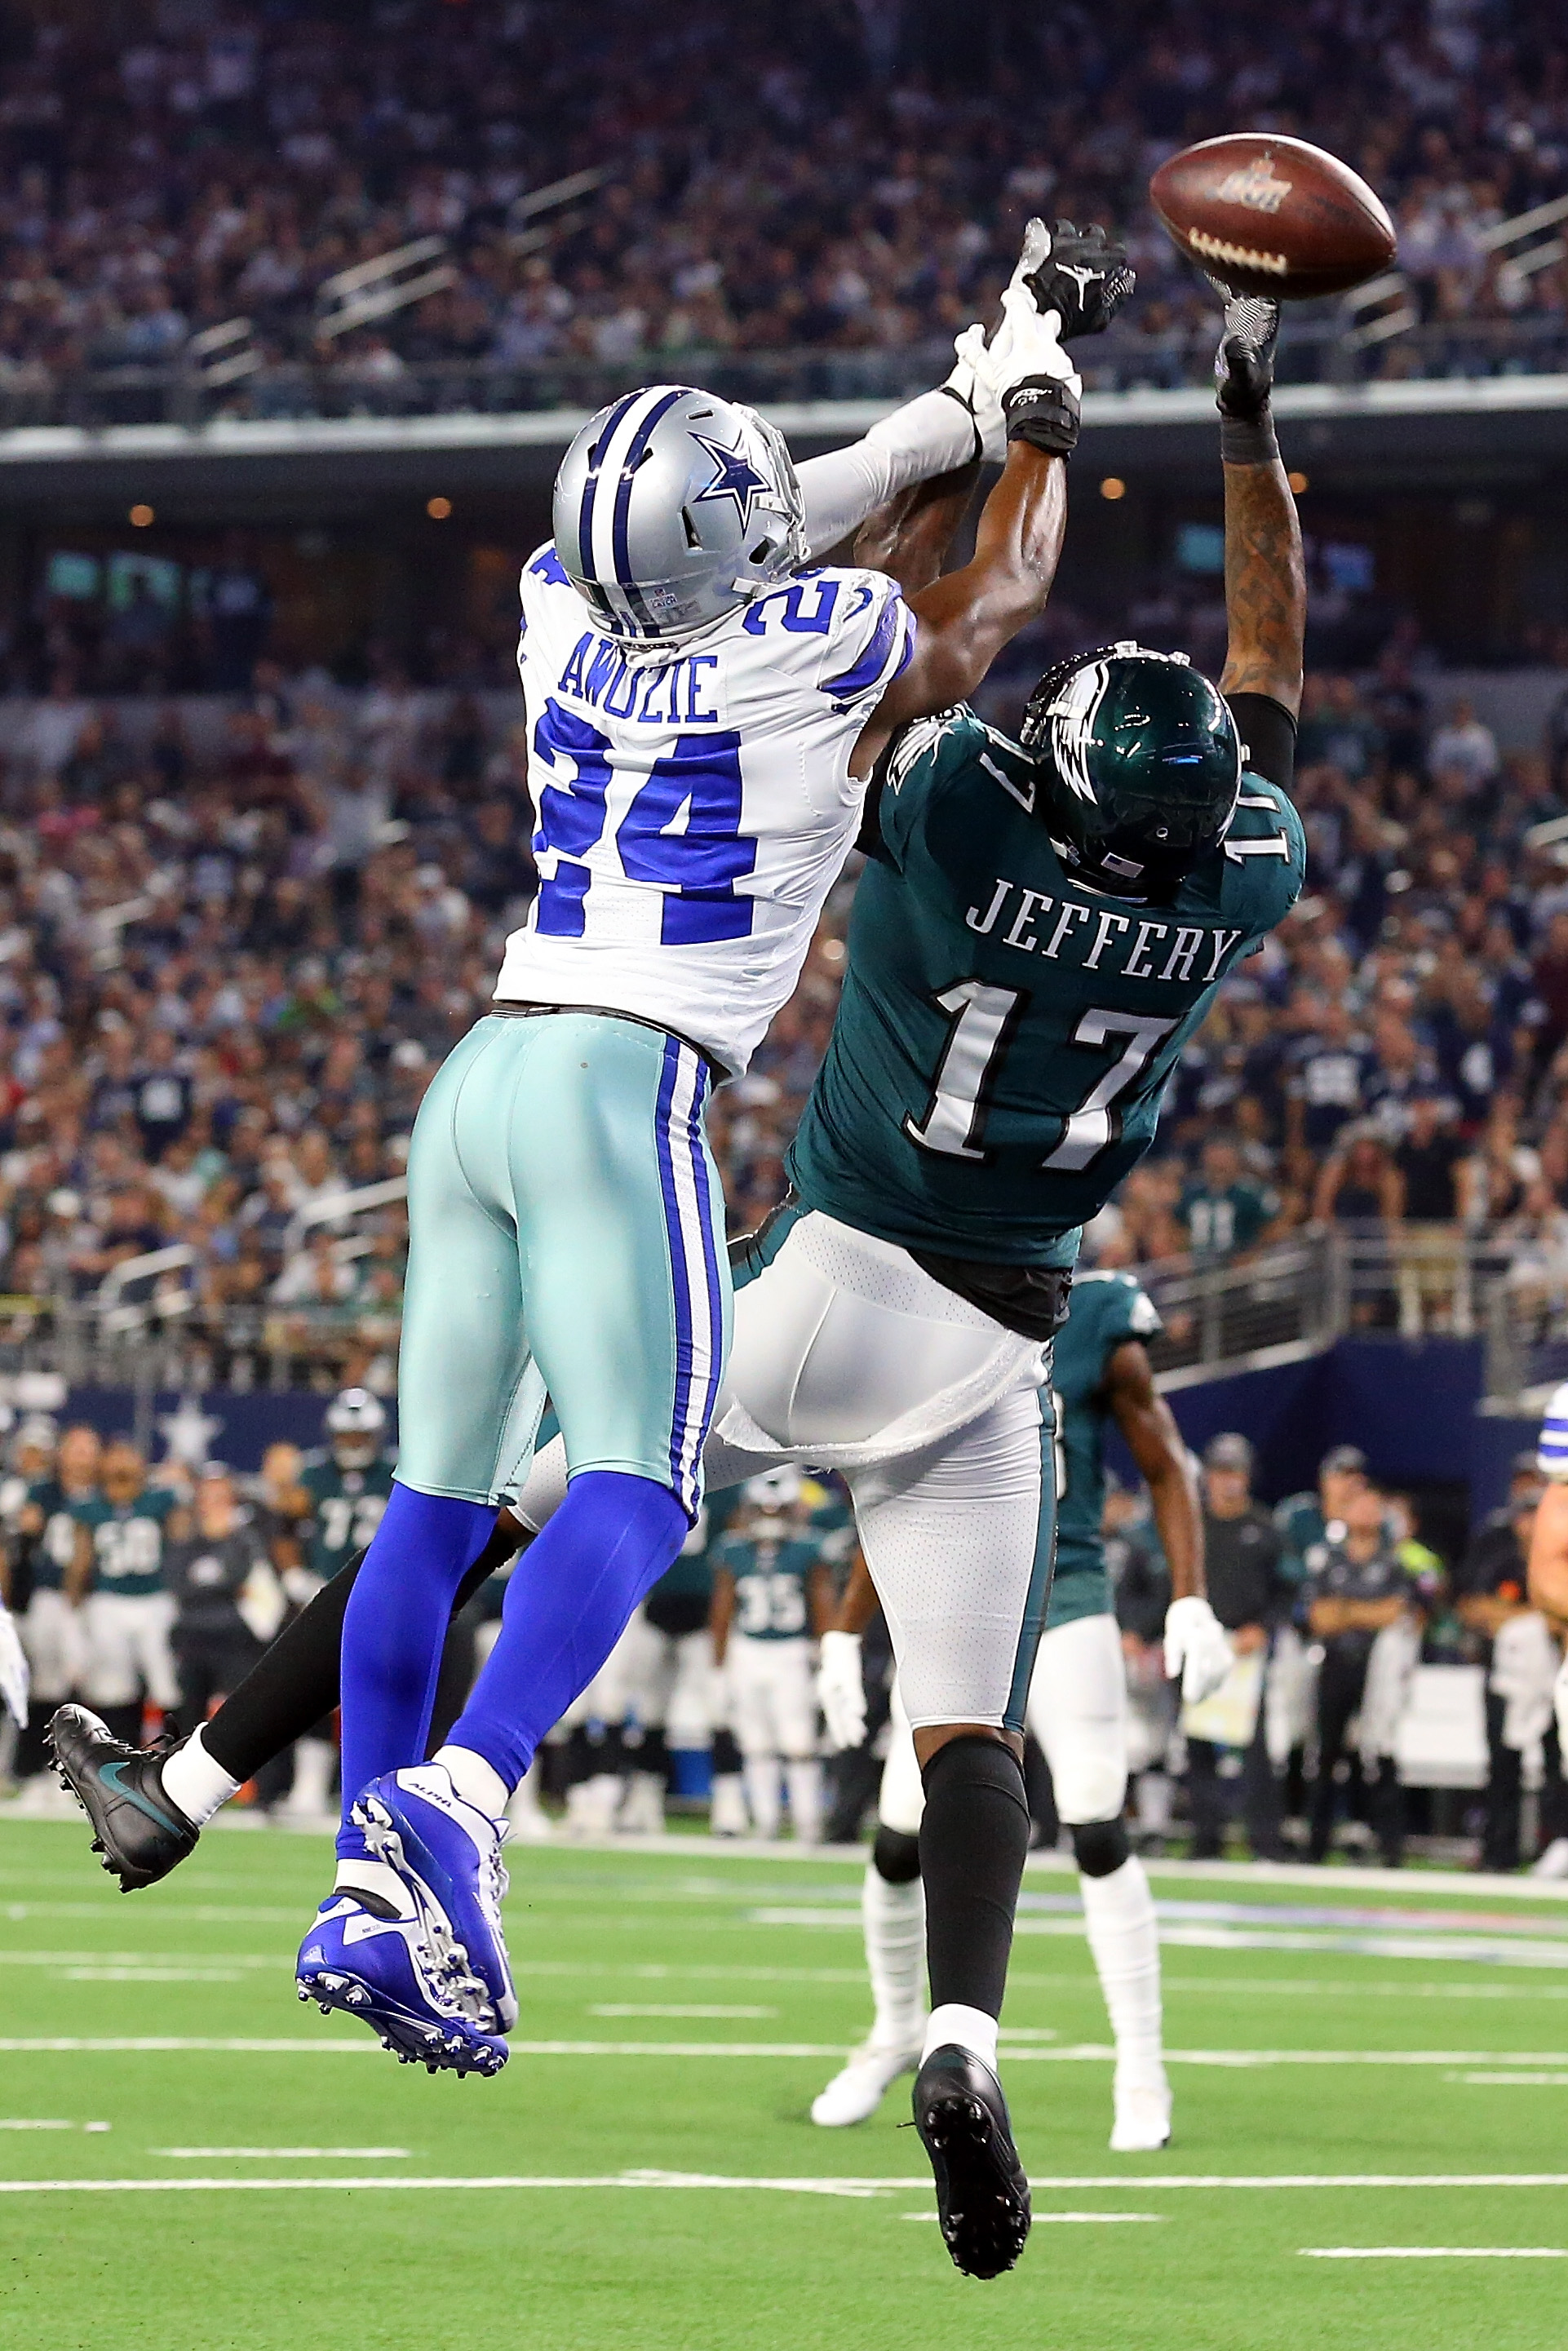 What happens if all 4 NFC East teams finish with 6-10 records?